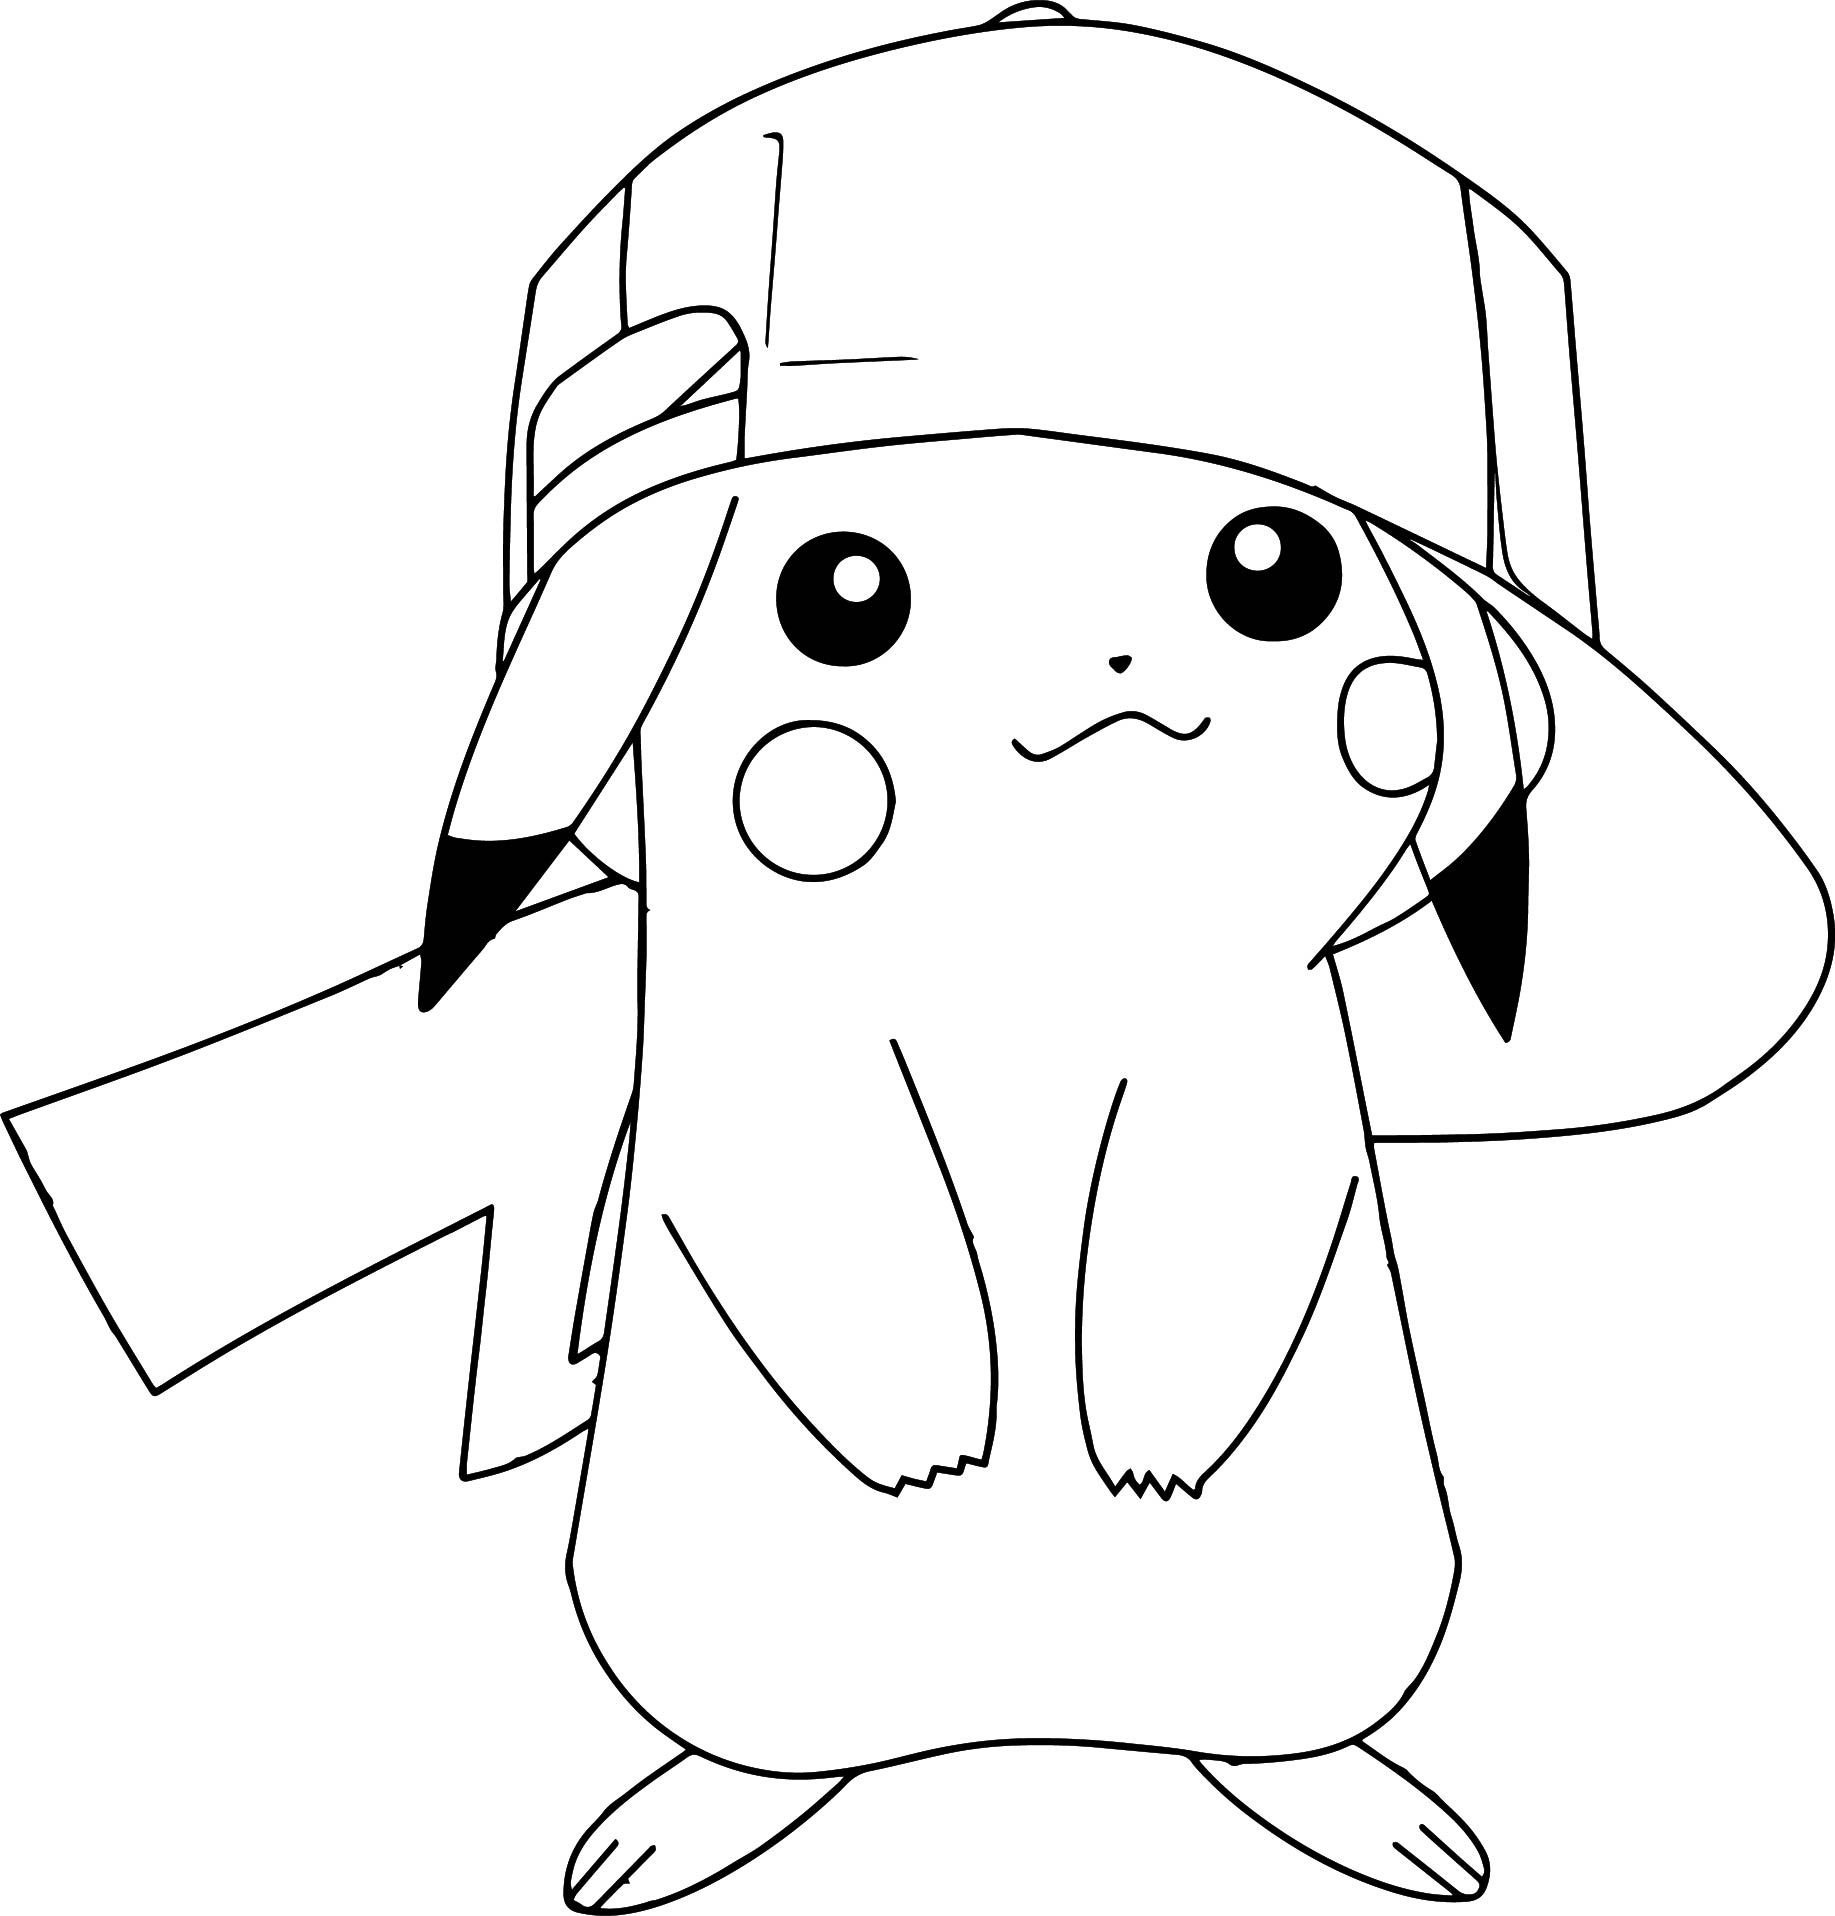 Coloring Pages ~ Coloring Pages Pokemon Printablepokemon 20 Pokemon - Free Printable Pokemon Coloring Pages